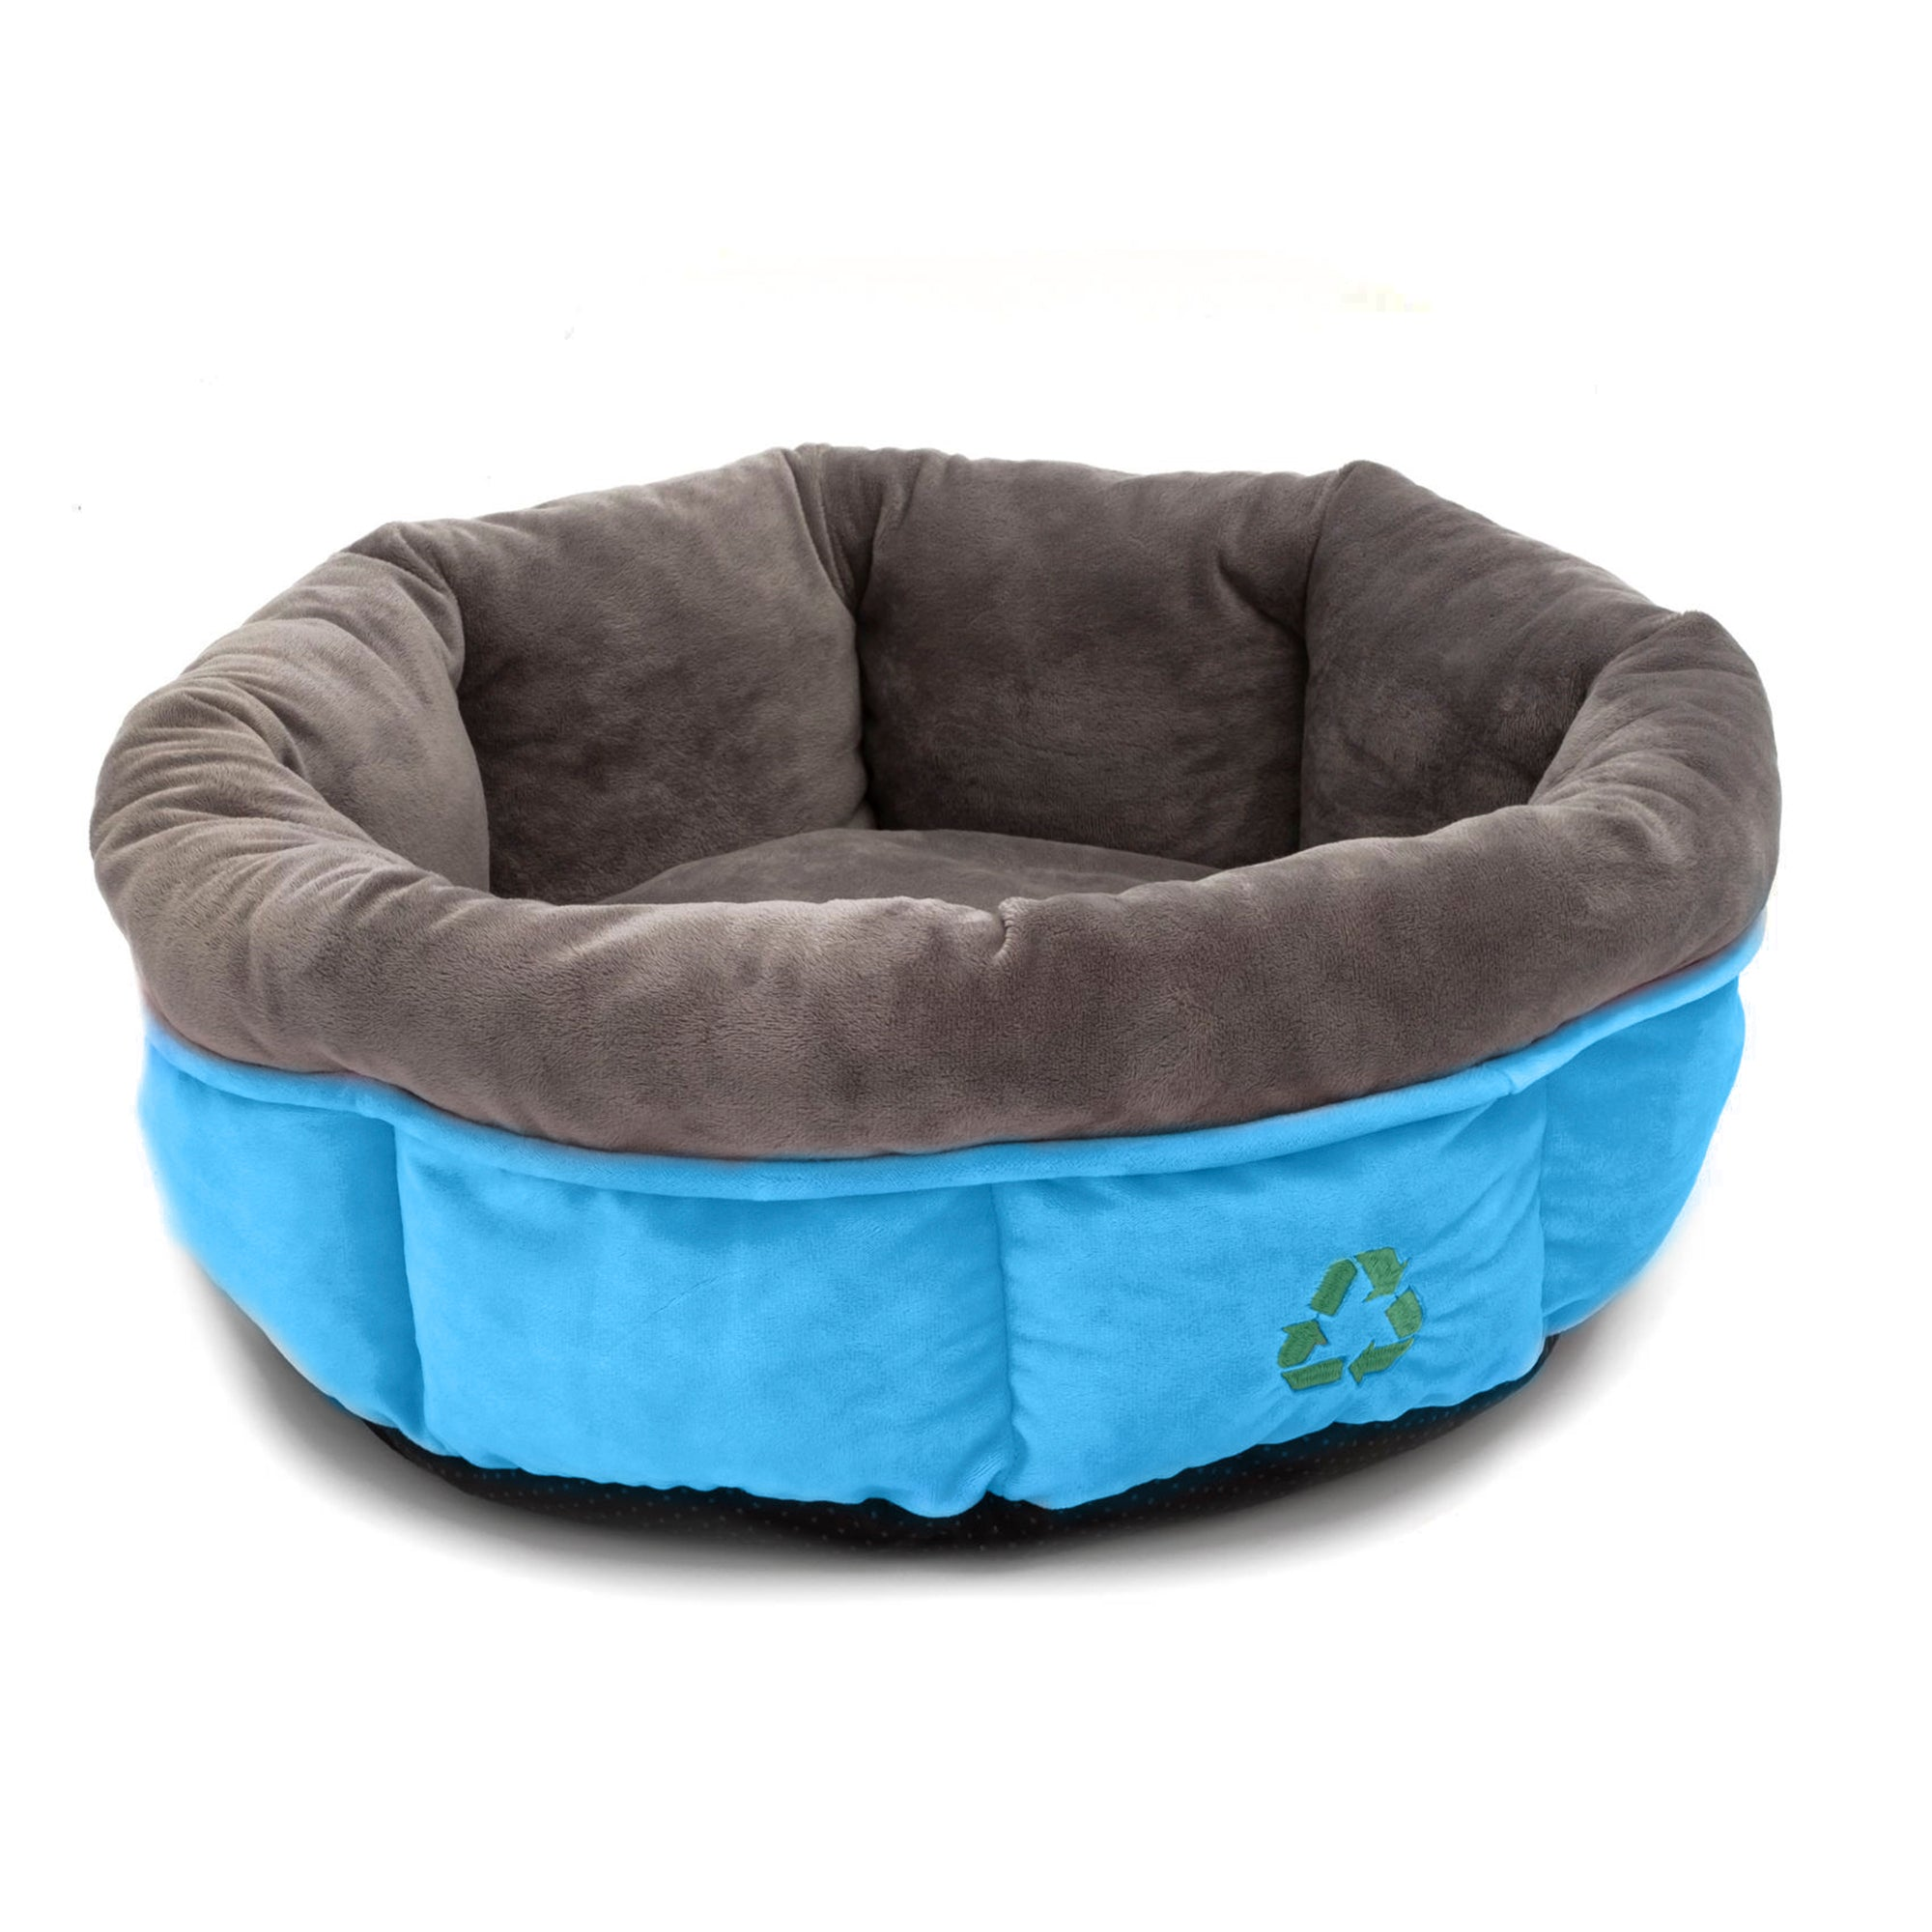 100% Recycled Blue and Grey Cat Bed